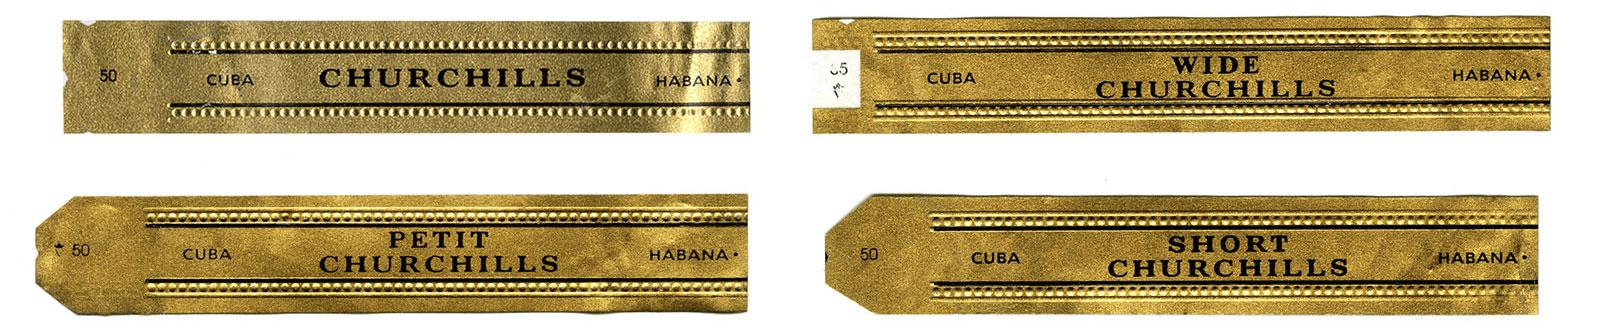 Secondary bands appear on Romeo y Julieta's Churchill line. Clockwise from top left: Churchill, Wide Churchill. Short Churchill, Petit Churchill.